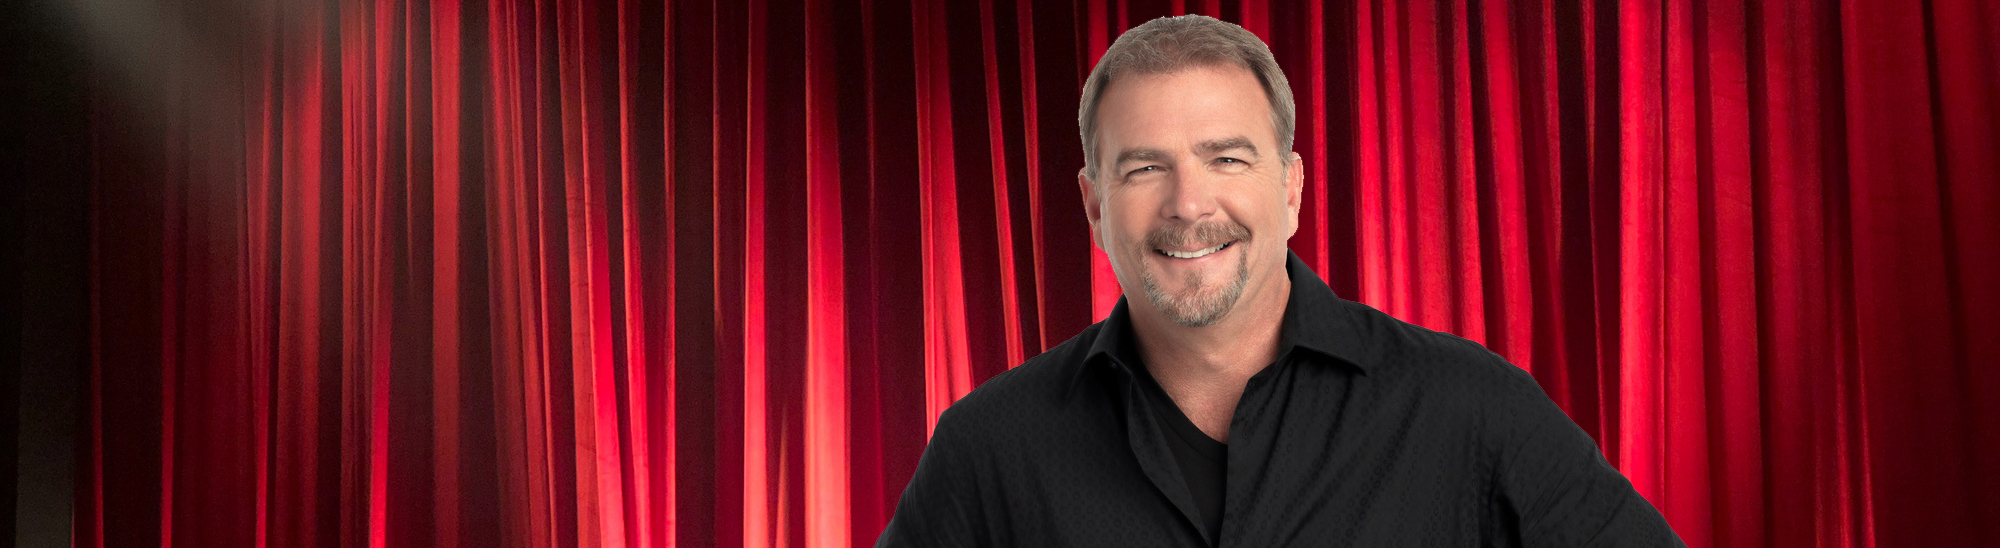 bill-engvall-just-sell-him-for-parts-tour